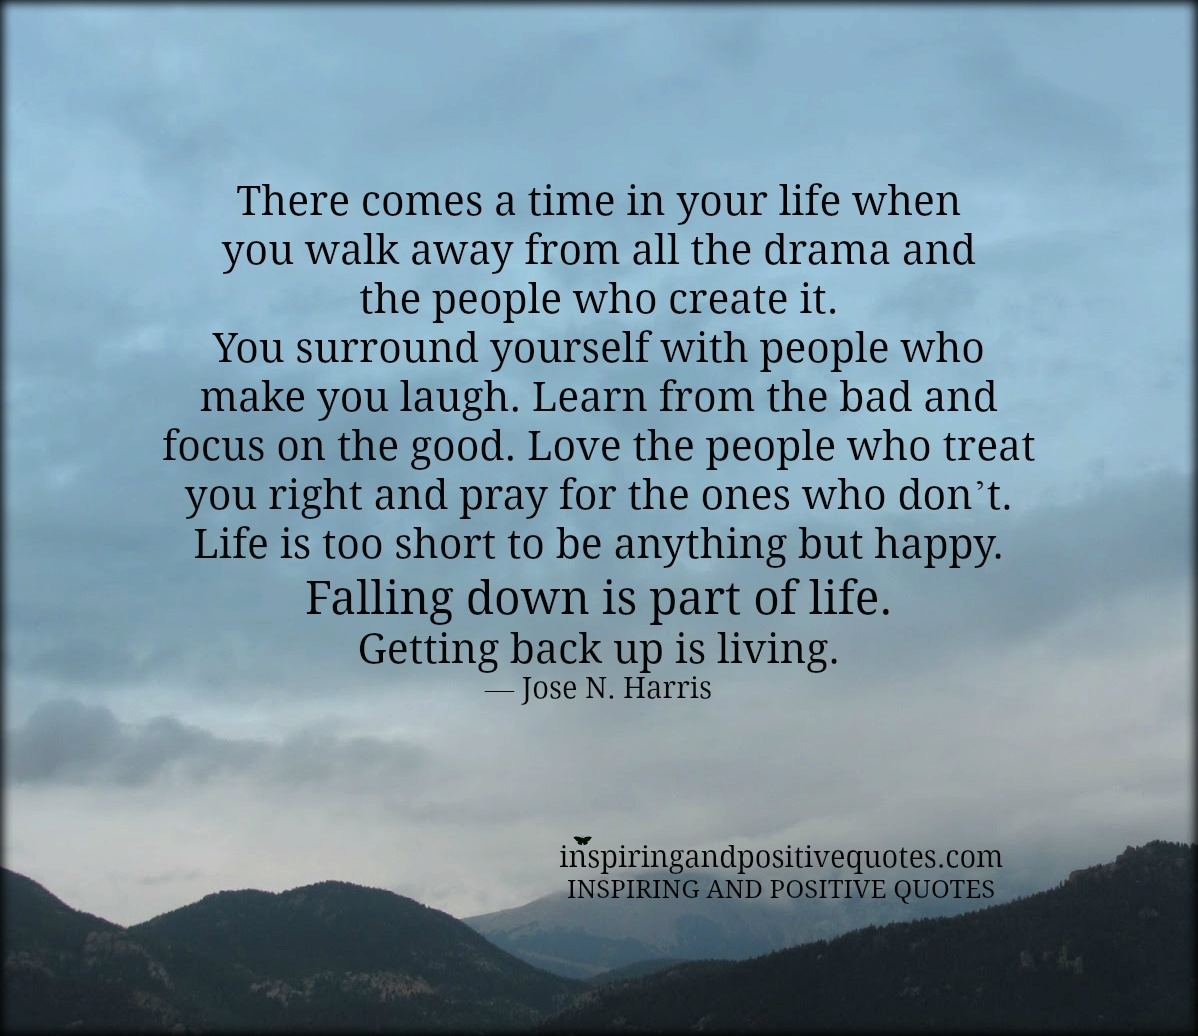 there comes a time in your life inspiring and positive